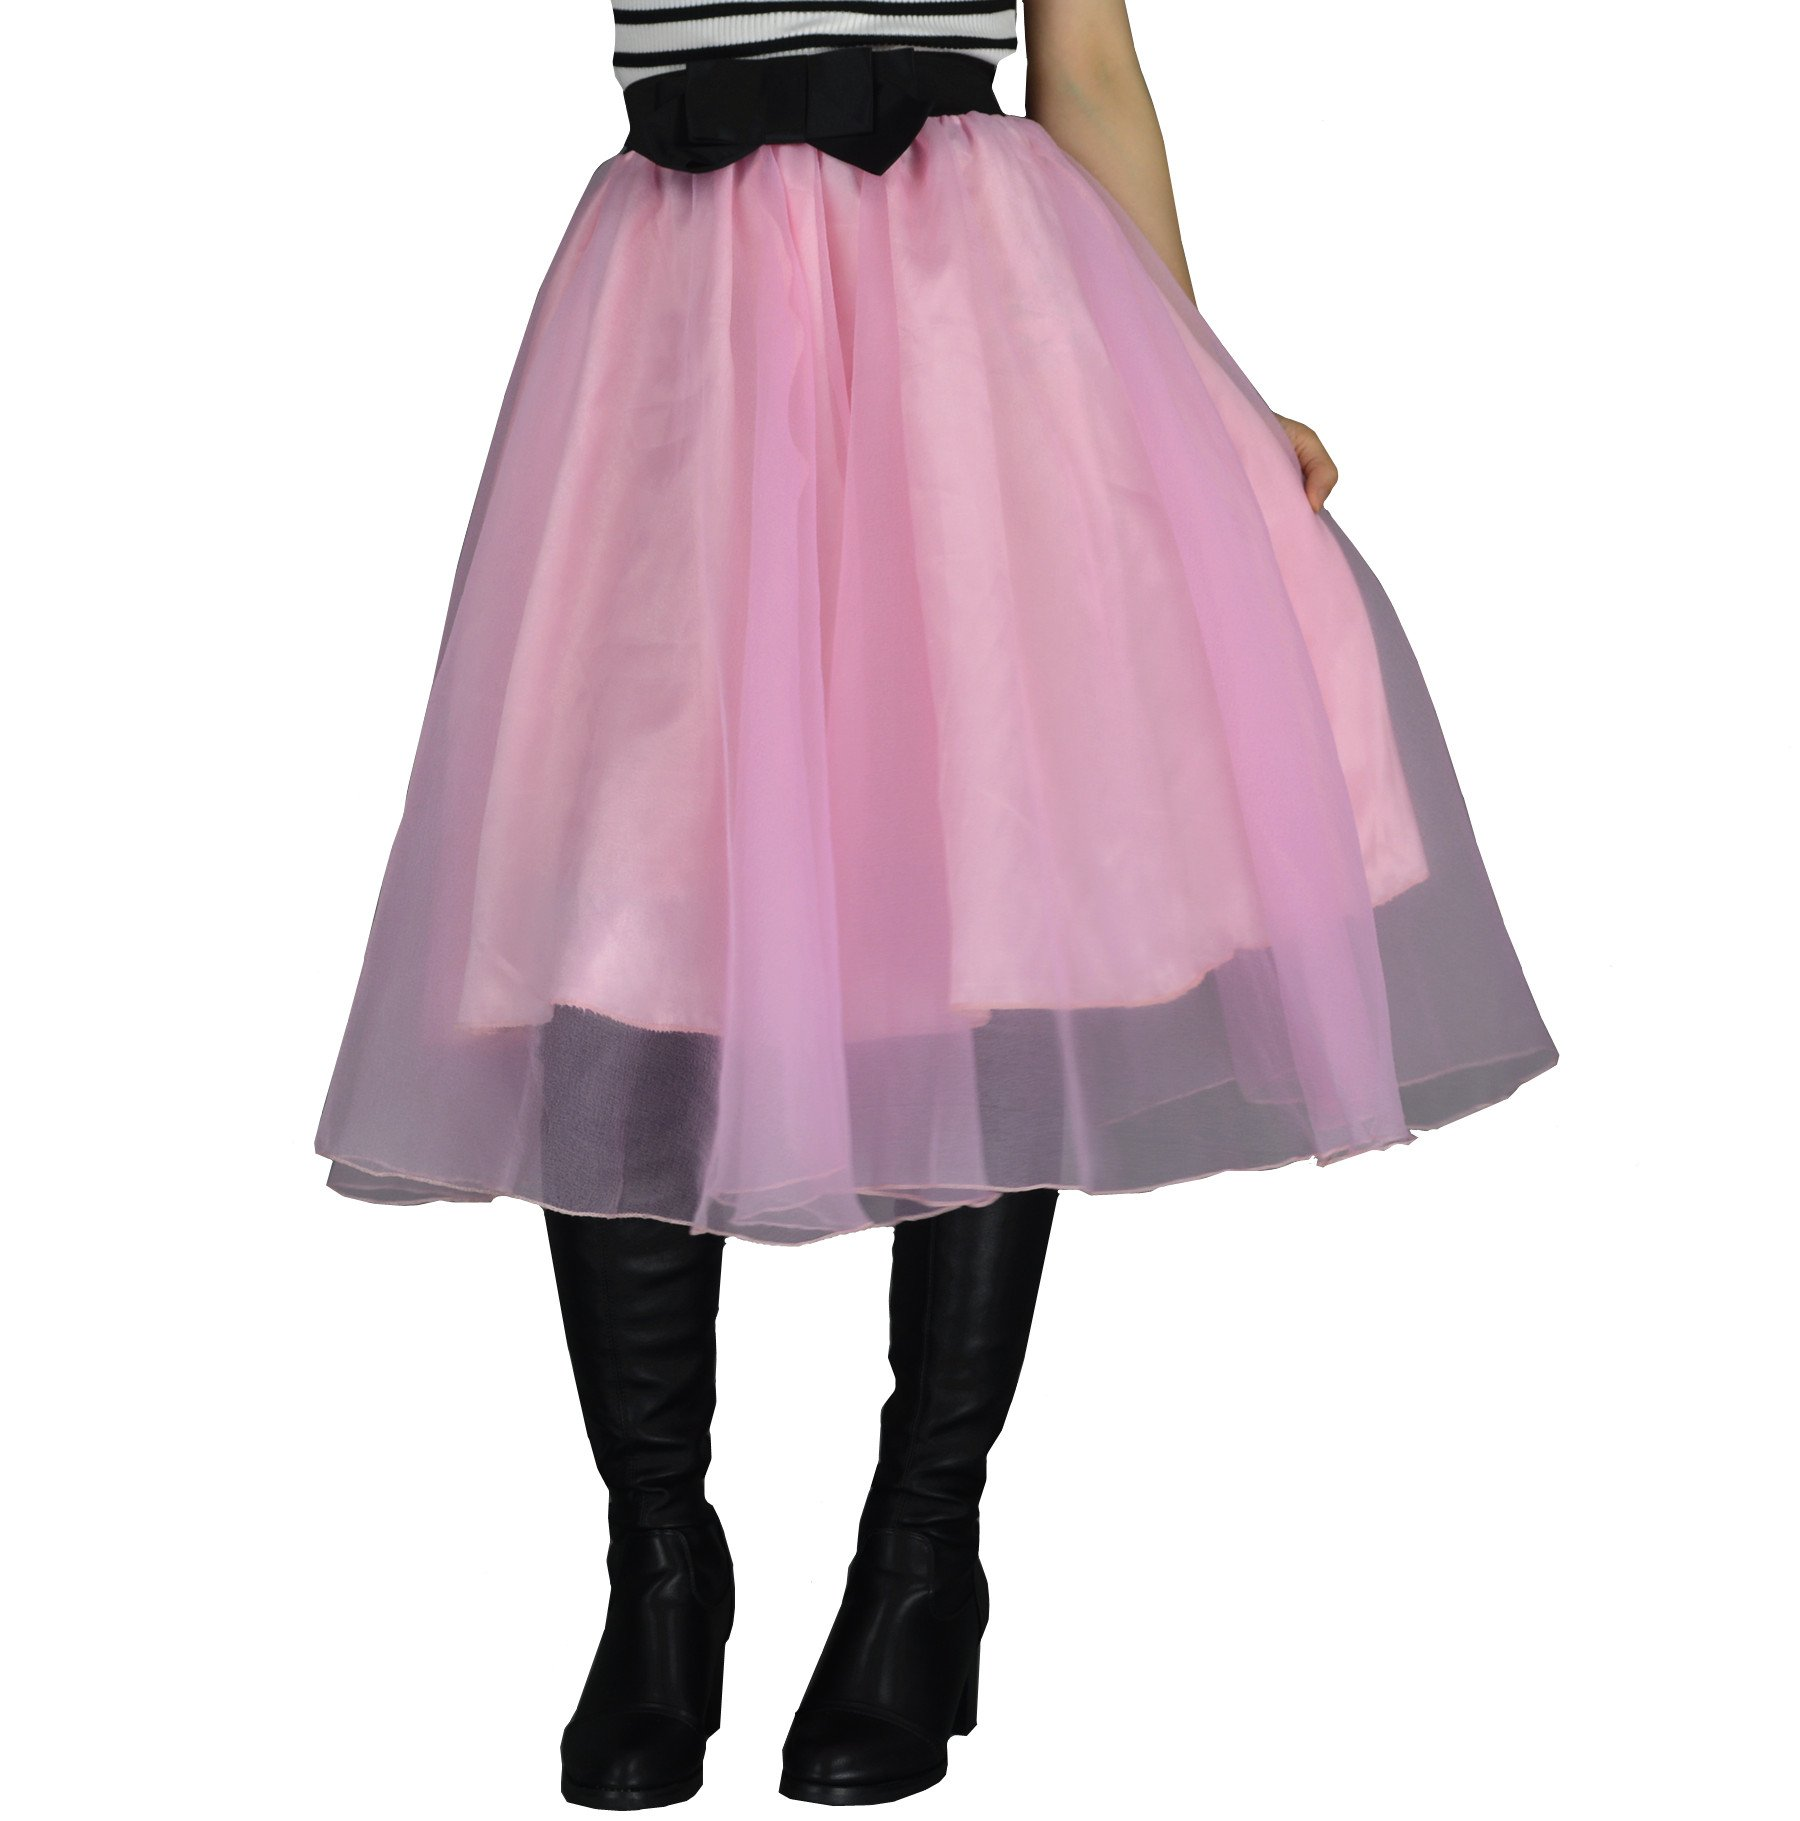 YSJERA Lady's Organza Princess Skirt Bowknot A Line Pleated Midi/Knee Length Tutu Party Skirts (XL,Pink)